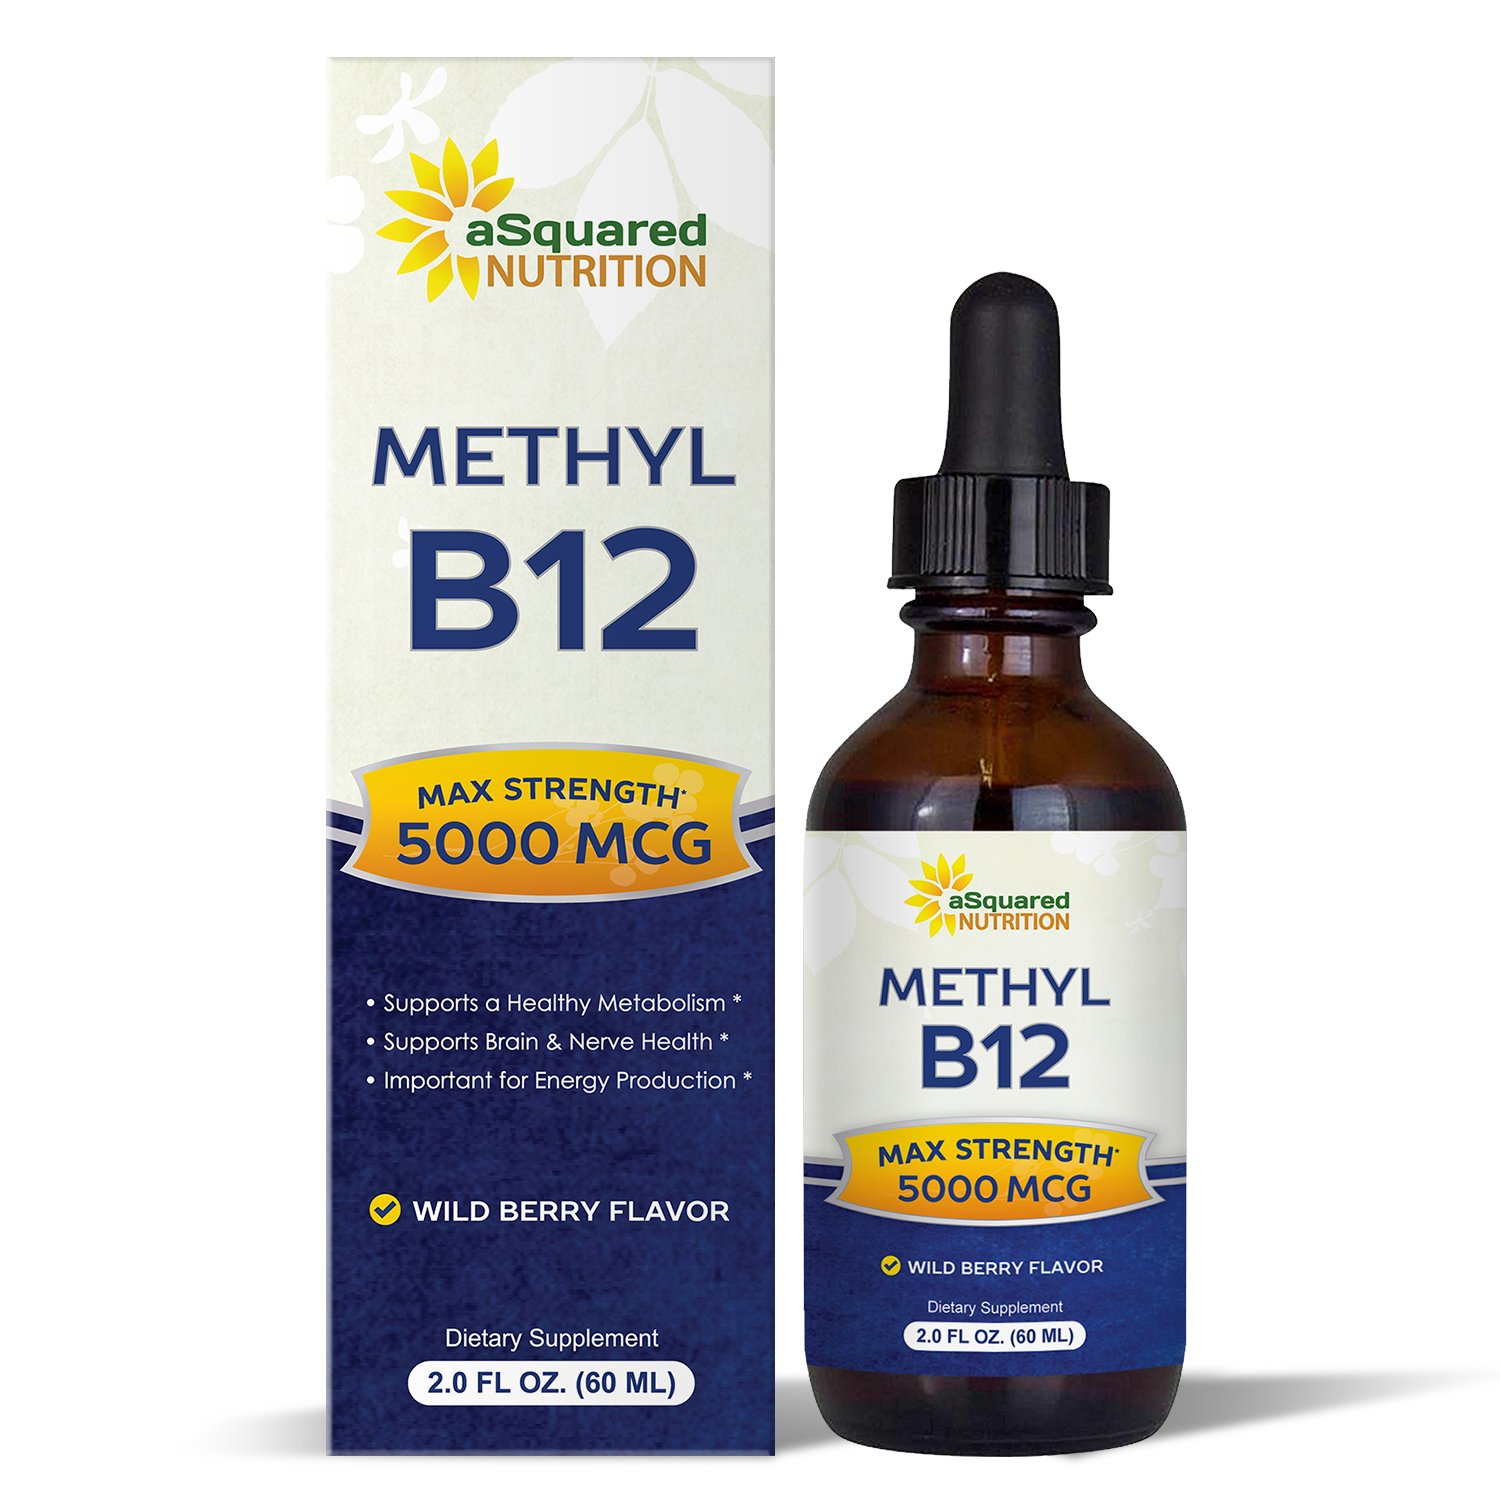 Vitamin B12 Sublingual Liquid Drops - 5000 MCG Supplement with Methylcobalamin (Methyl B-12) - Max Absorption B 12 to Increase Energy & Metabolism - Vegan Friendly - 2 fl oz